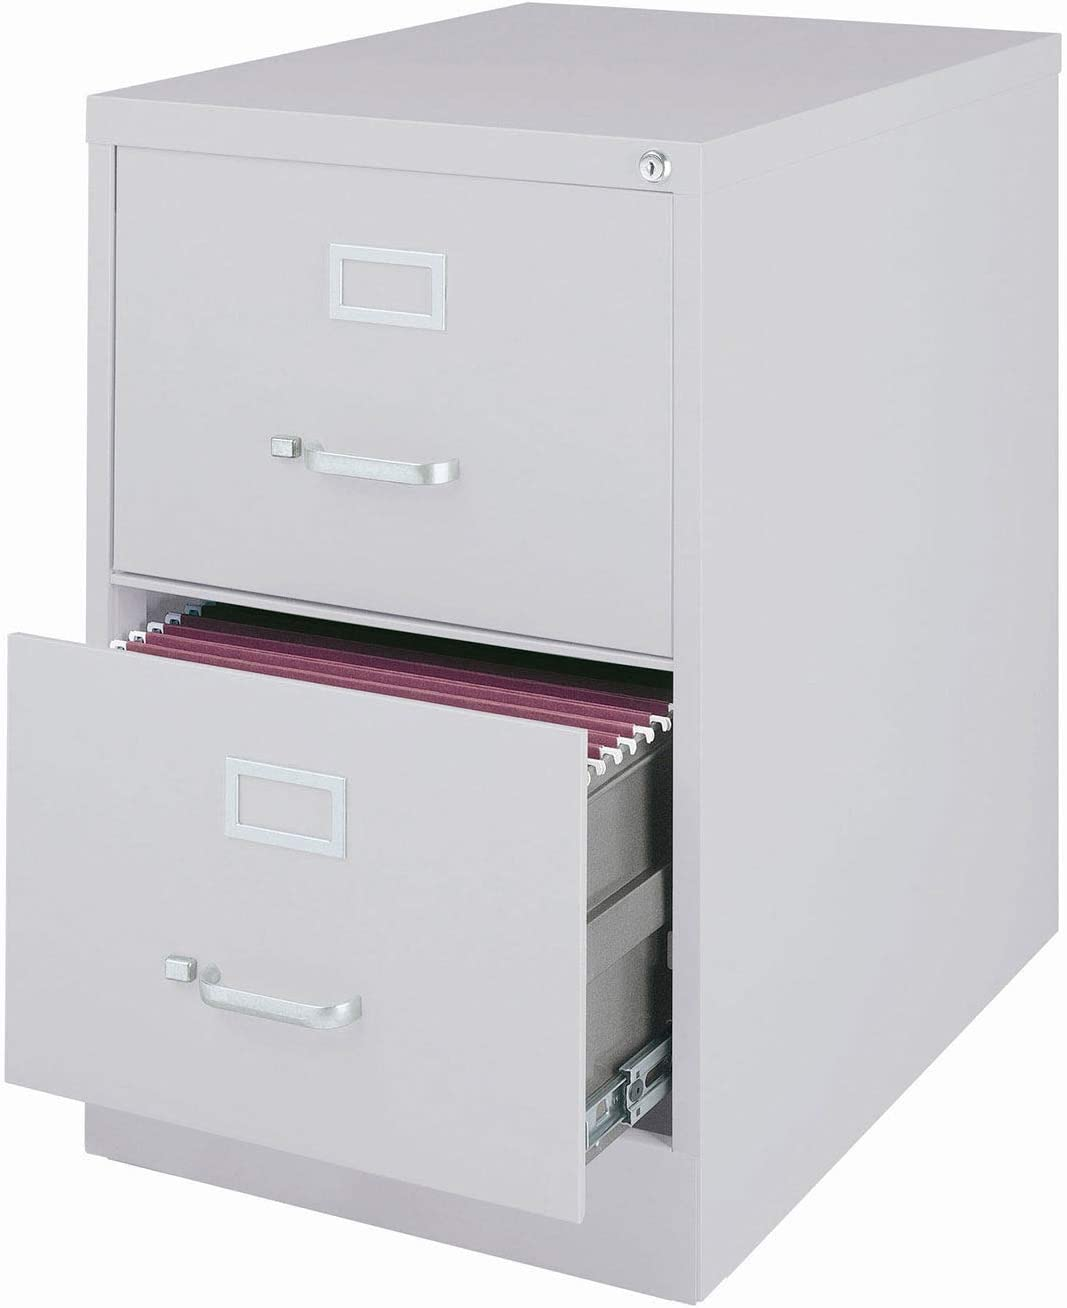 Amazon Com Hirsh Industries 25 Deep Vertical File Cabinet 2 Drawer Legal Size Light Gray 14414 Office Products